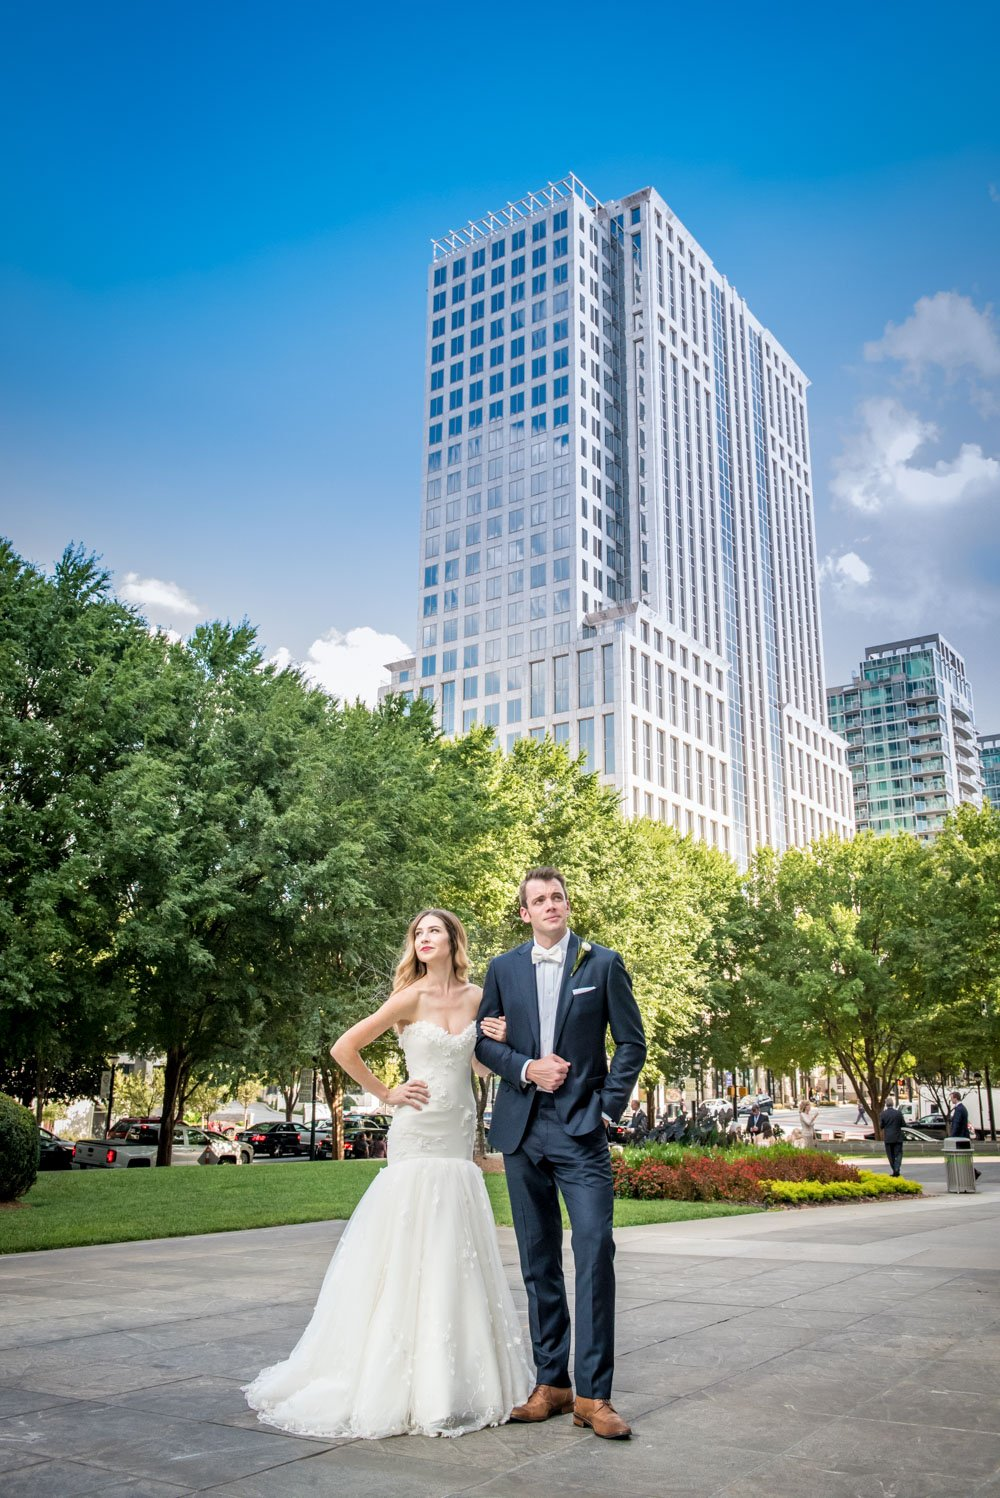 Atlanta Courthouse Wedding Photographer Portfolio 4